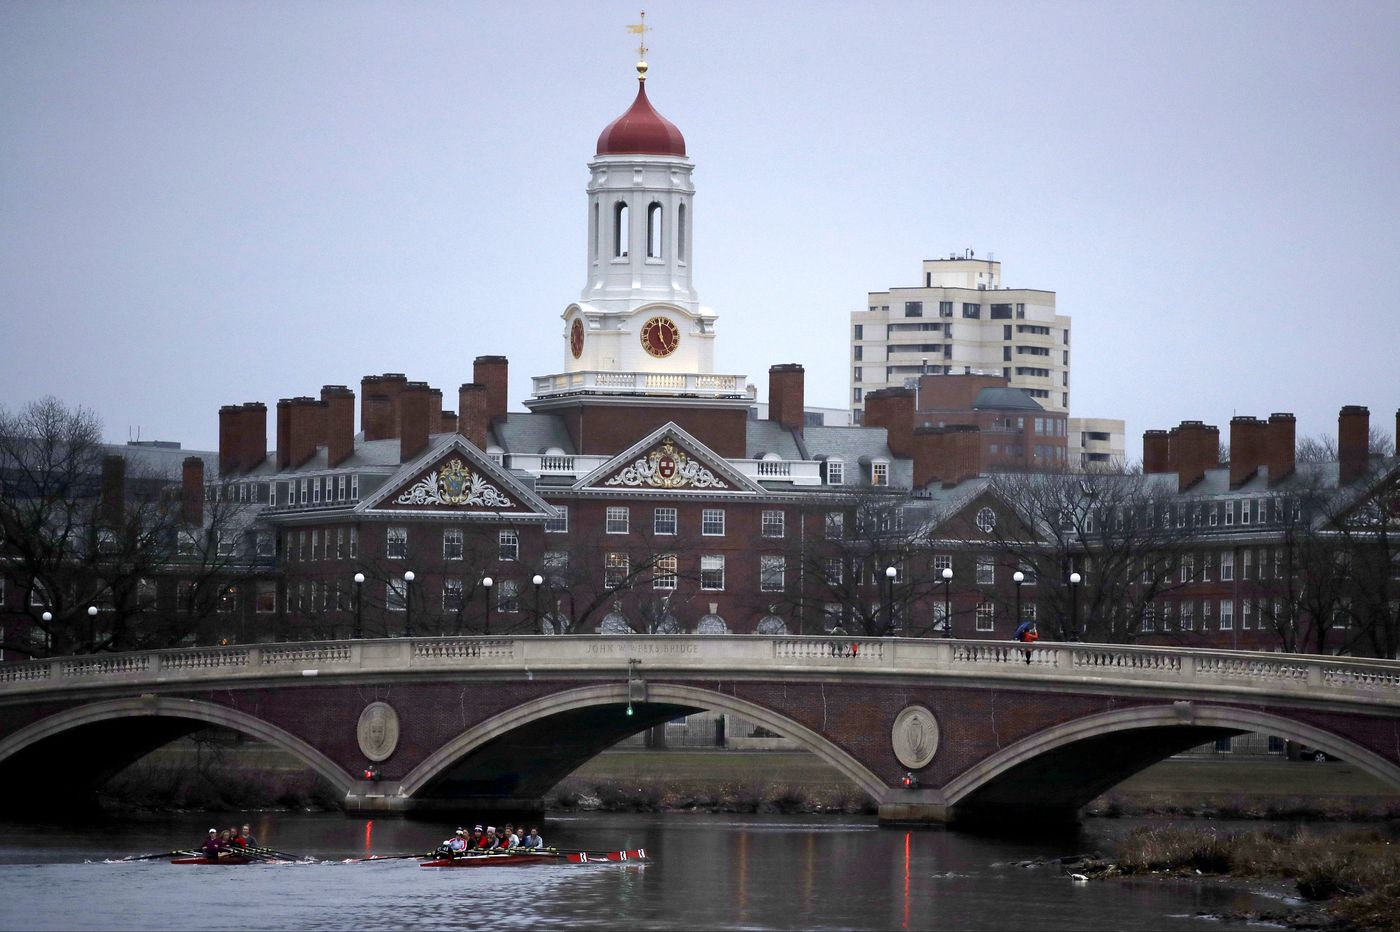 As Harvard's admissions face federal scrutiny, a reminder that grades aren't everything | Opinion